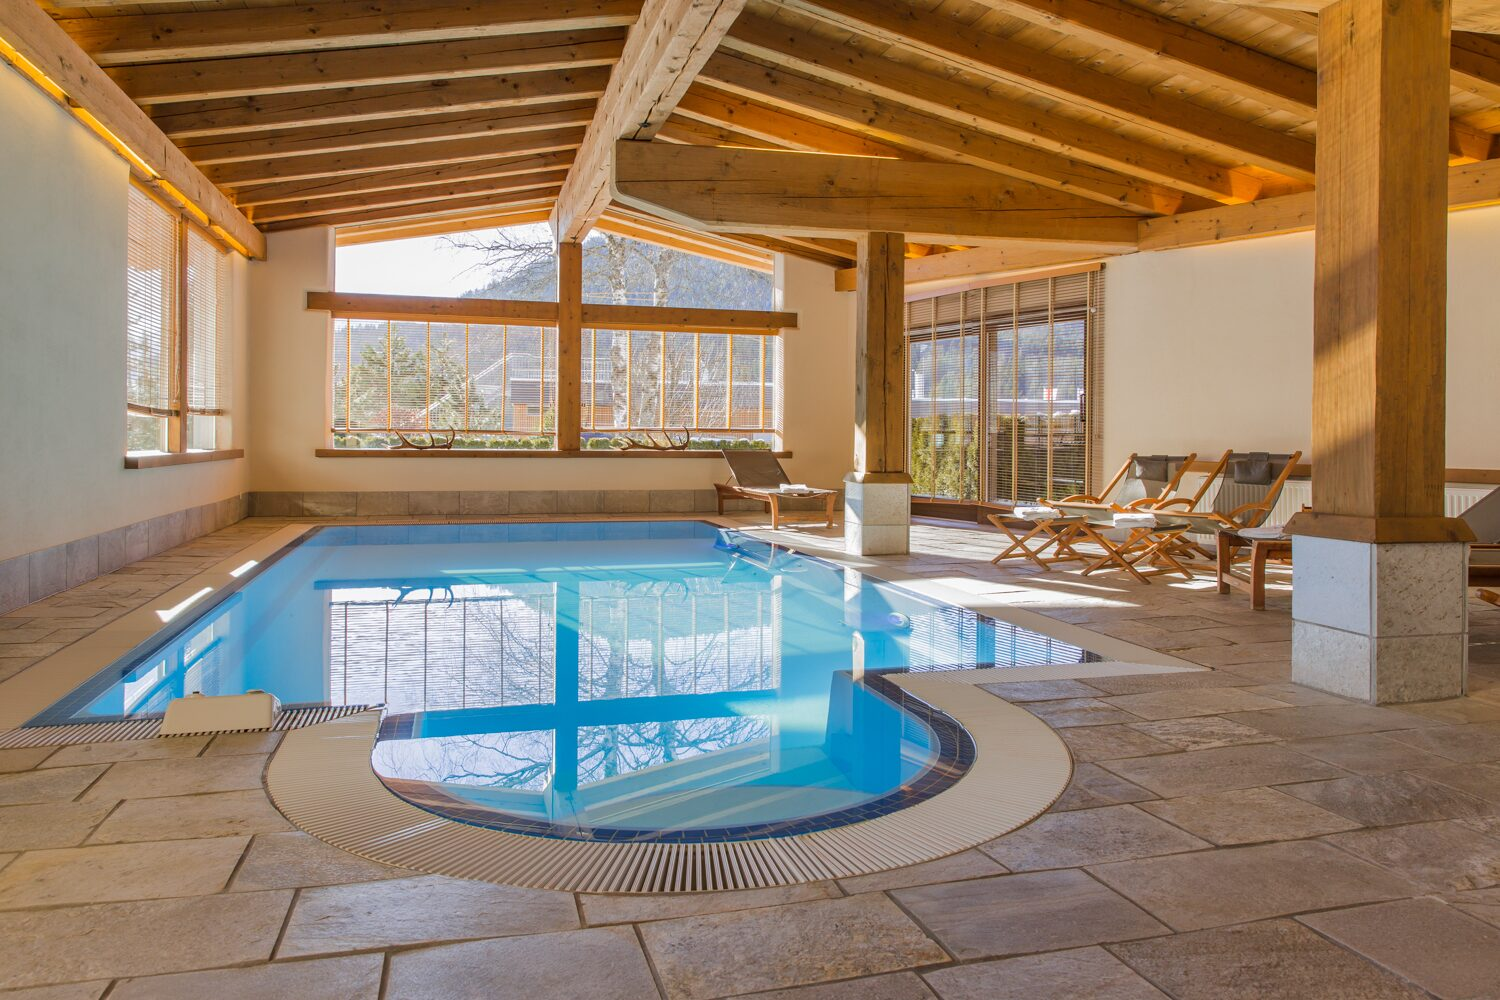 Andrada   ''Spending the evenings at the pool and sauna''